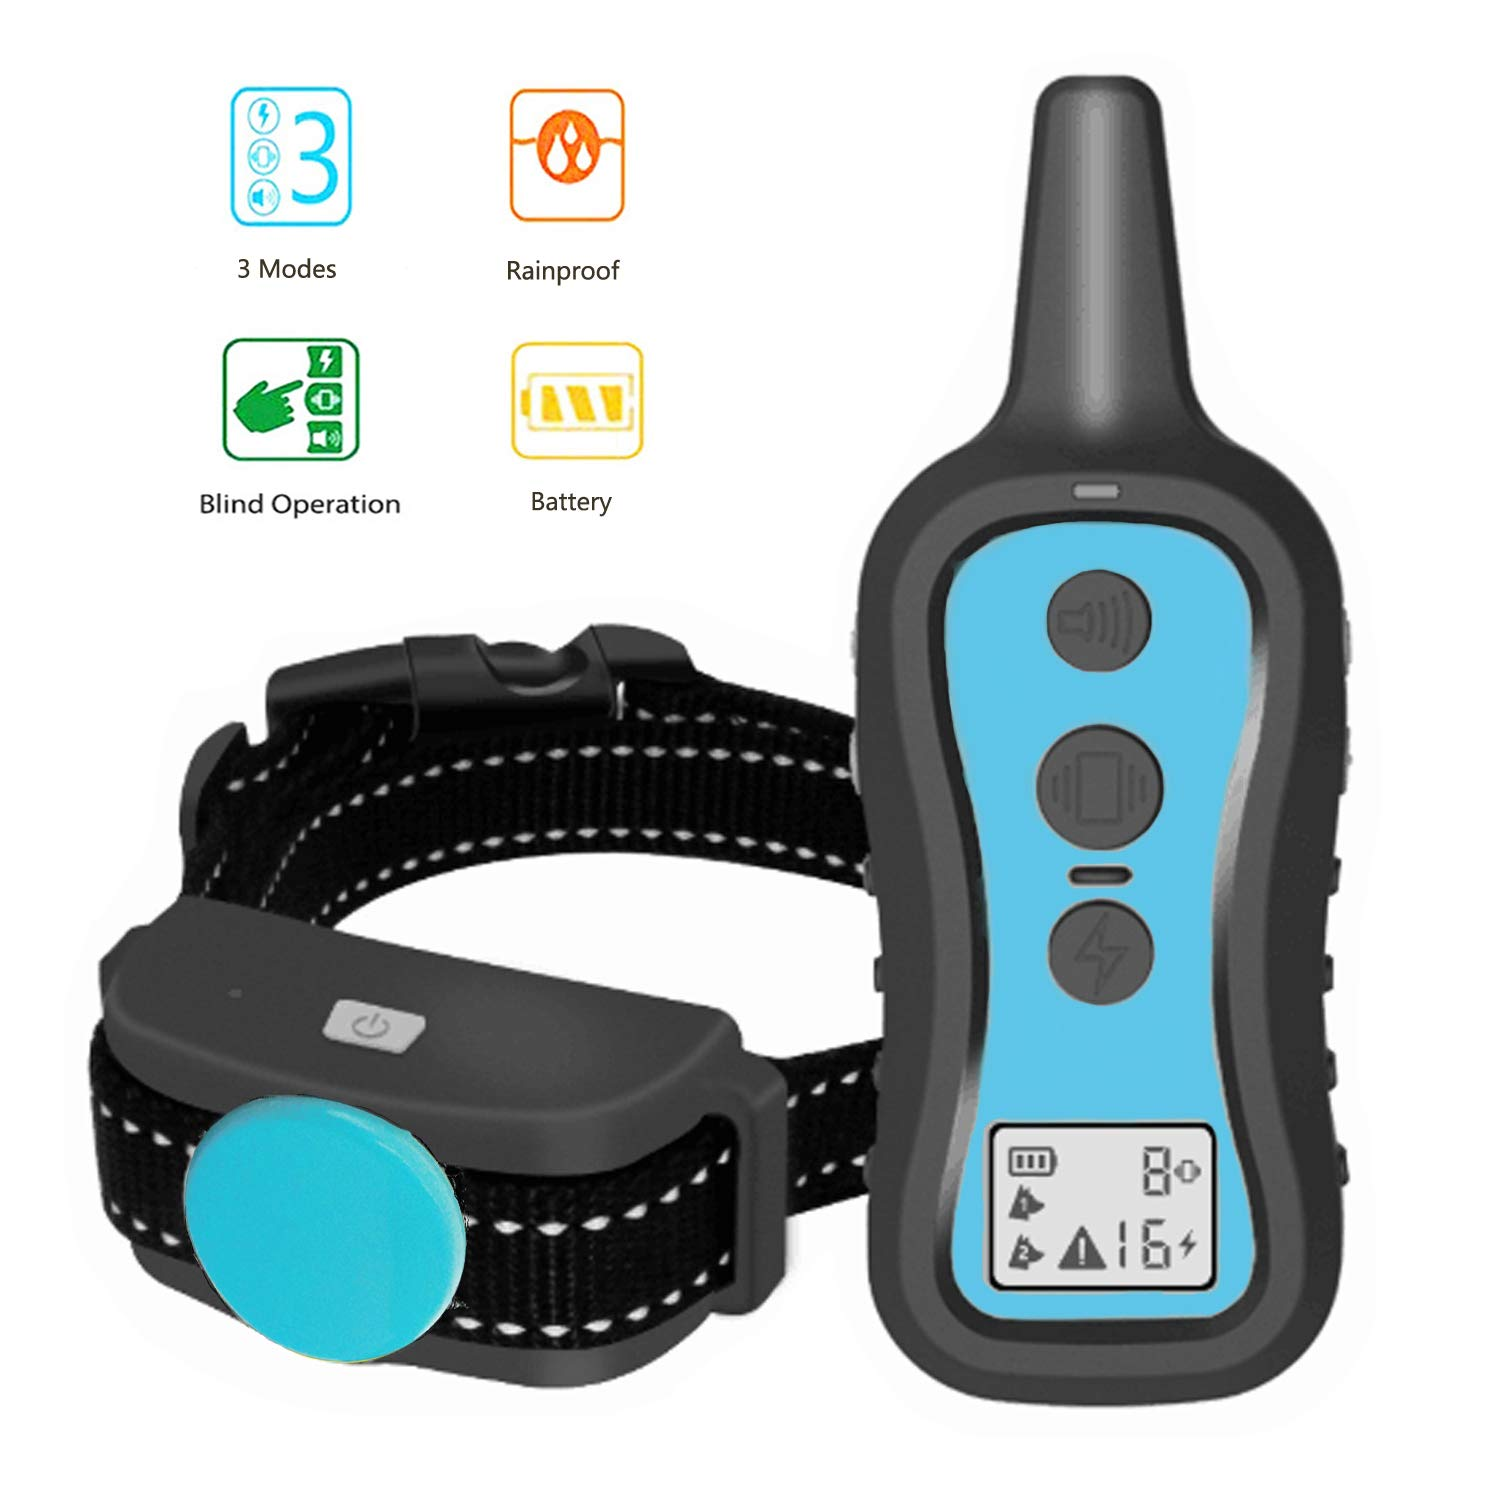 Perwin Dog Training Collar with Remote - Dog Shock Collar 1000ft Range Rainproof Dog Electric Collar with Beep Vibration Safety Shock for Small Medium Large Dog by Perwin